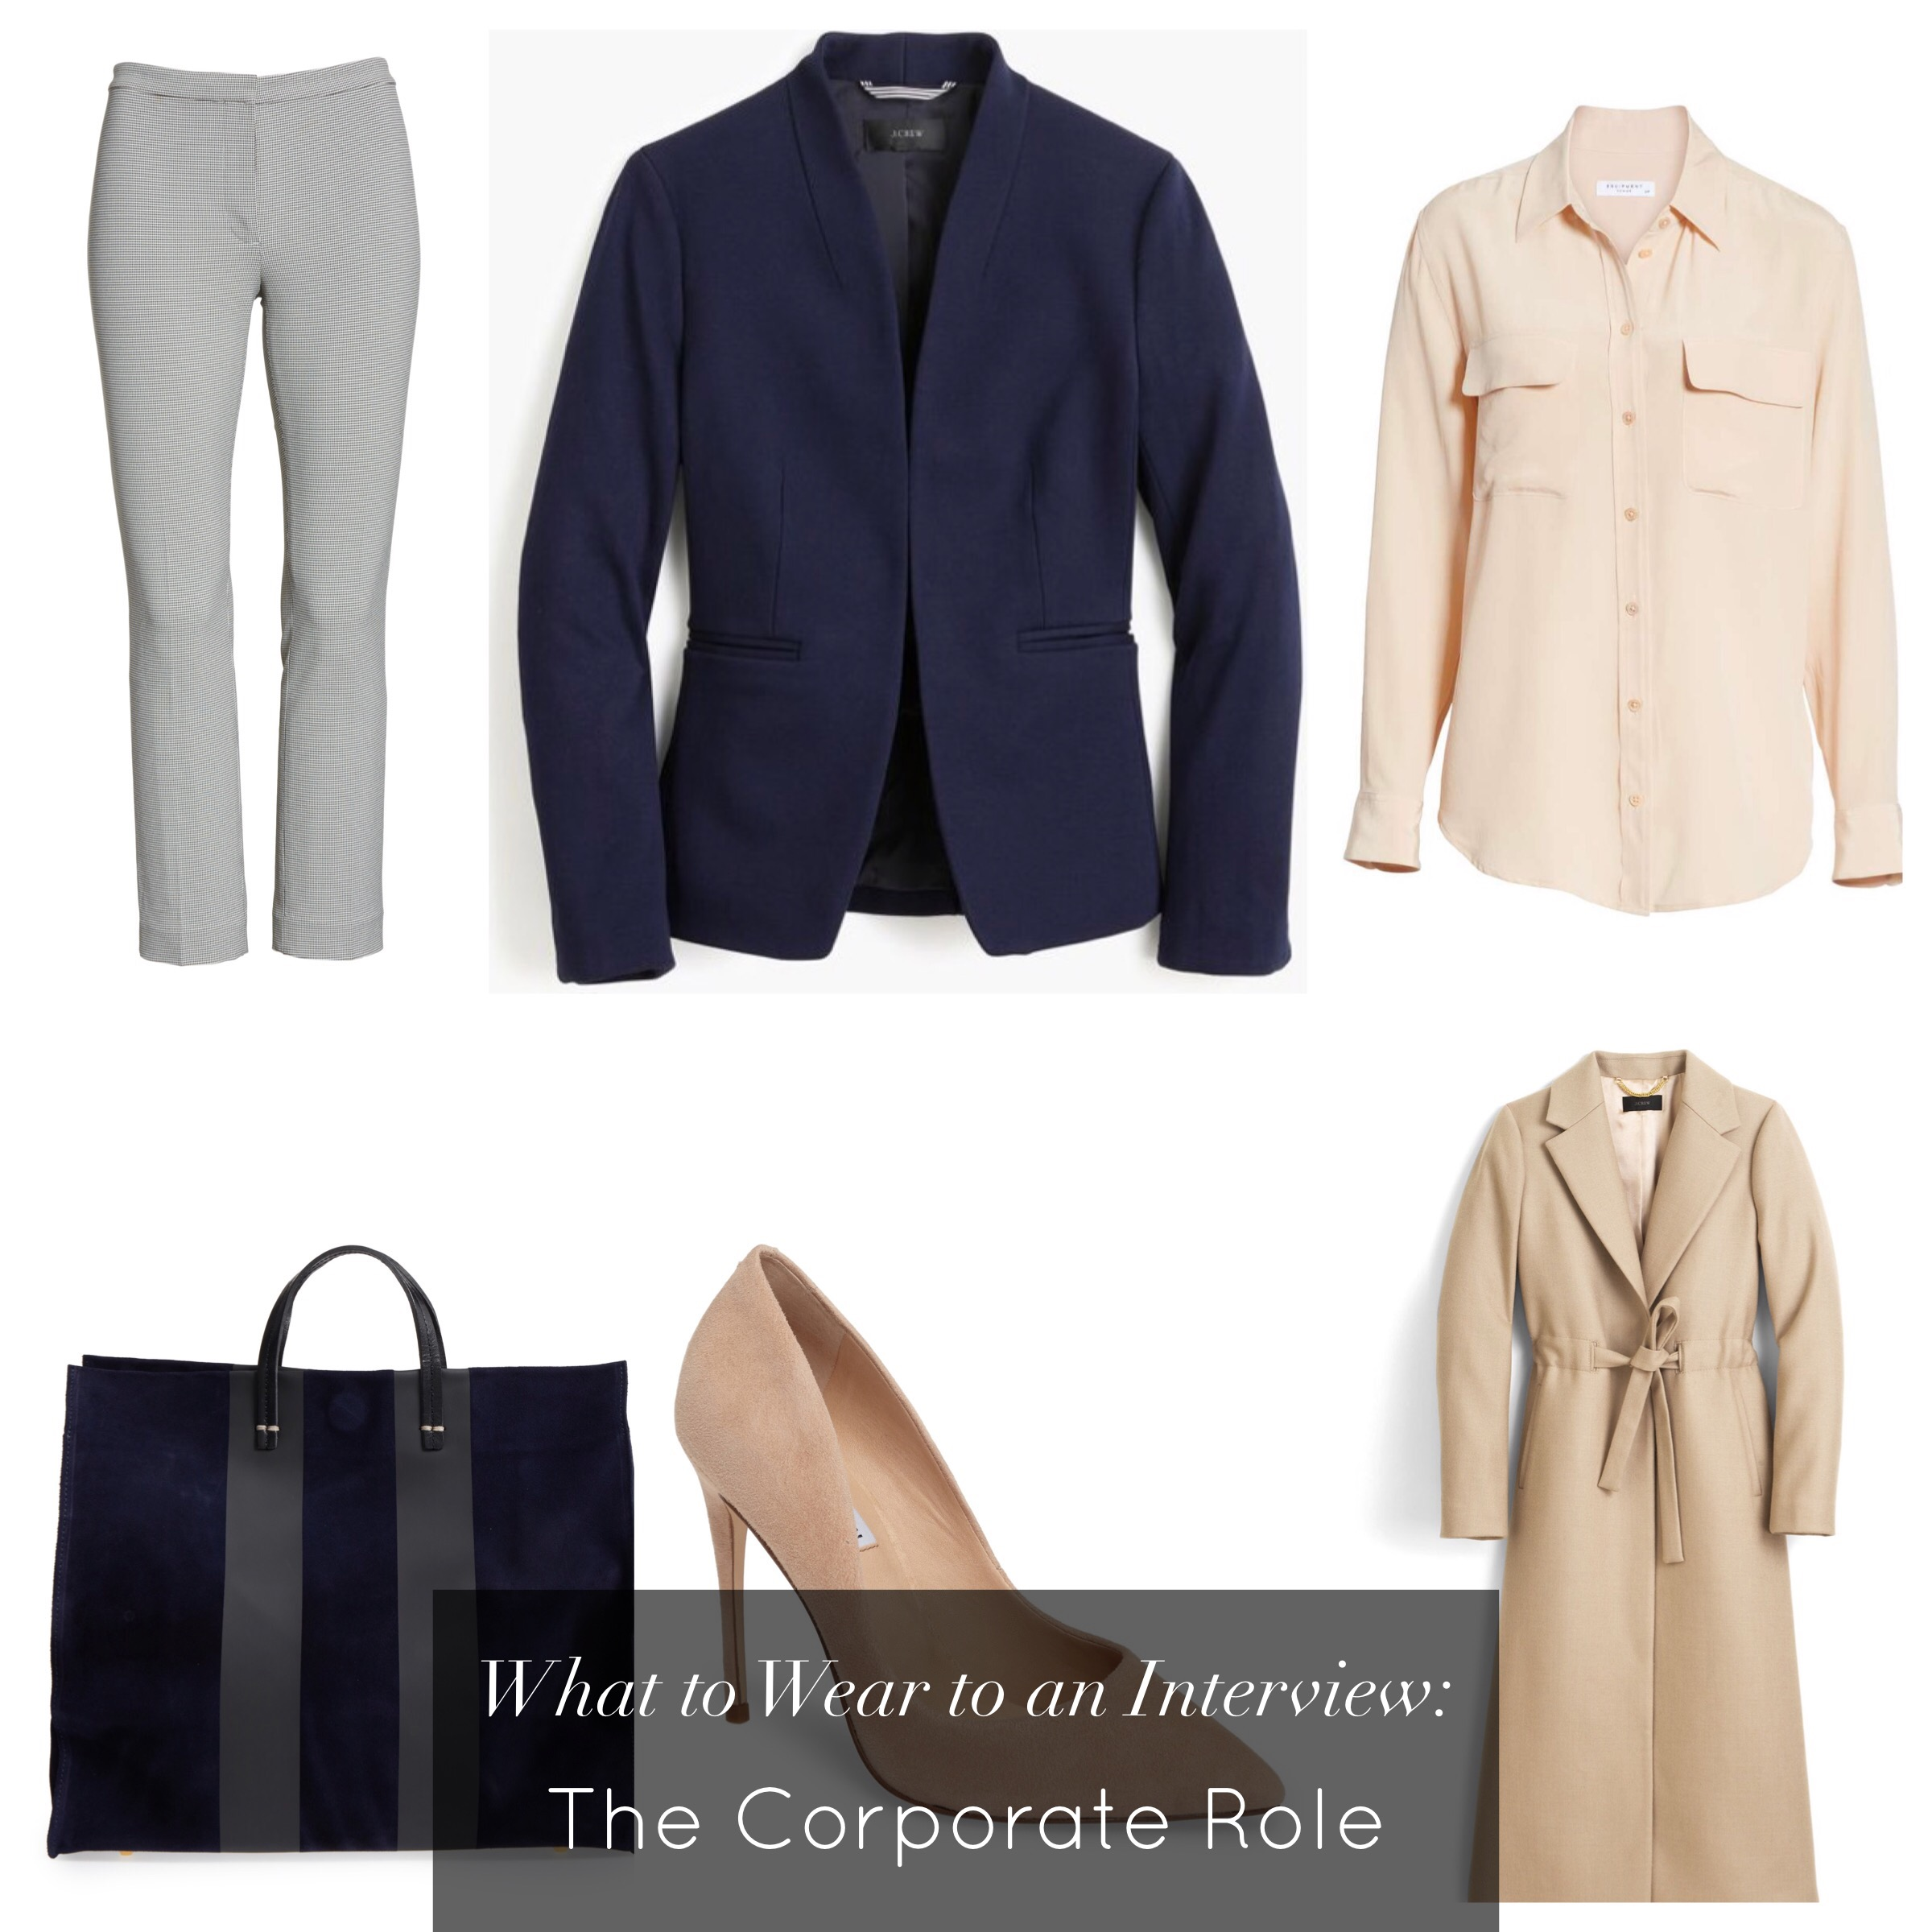 what to wear to an interview corporate role business casual